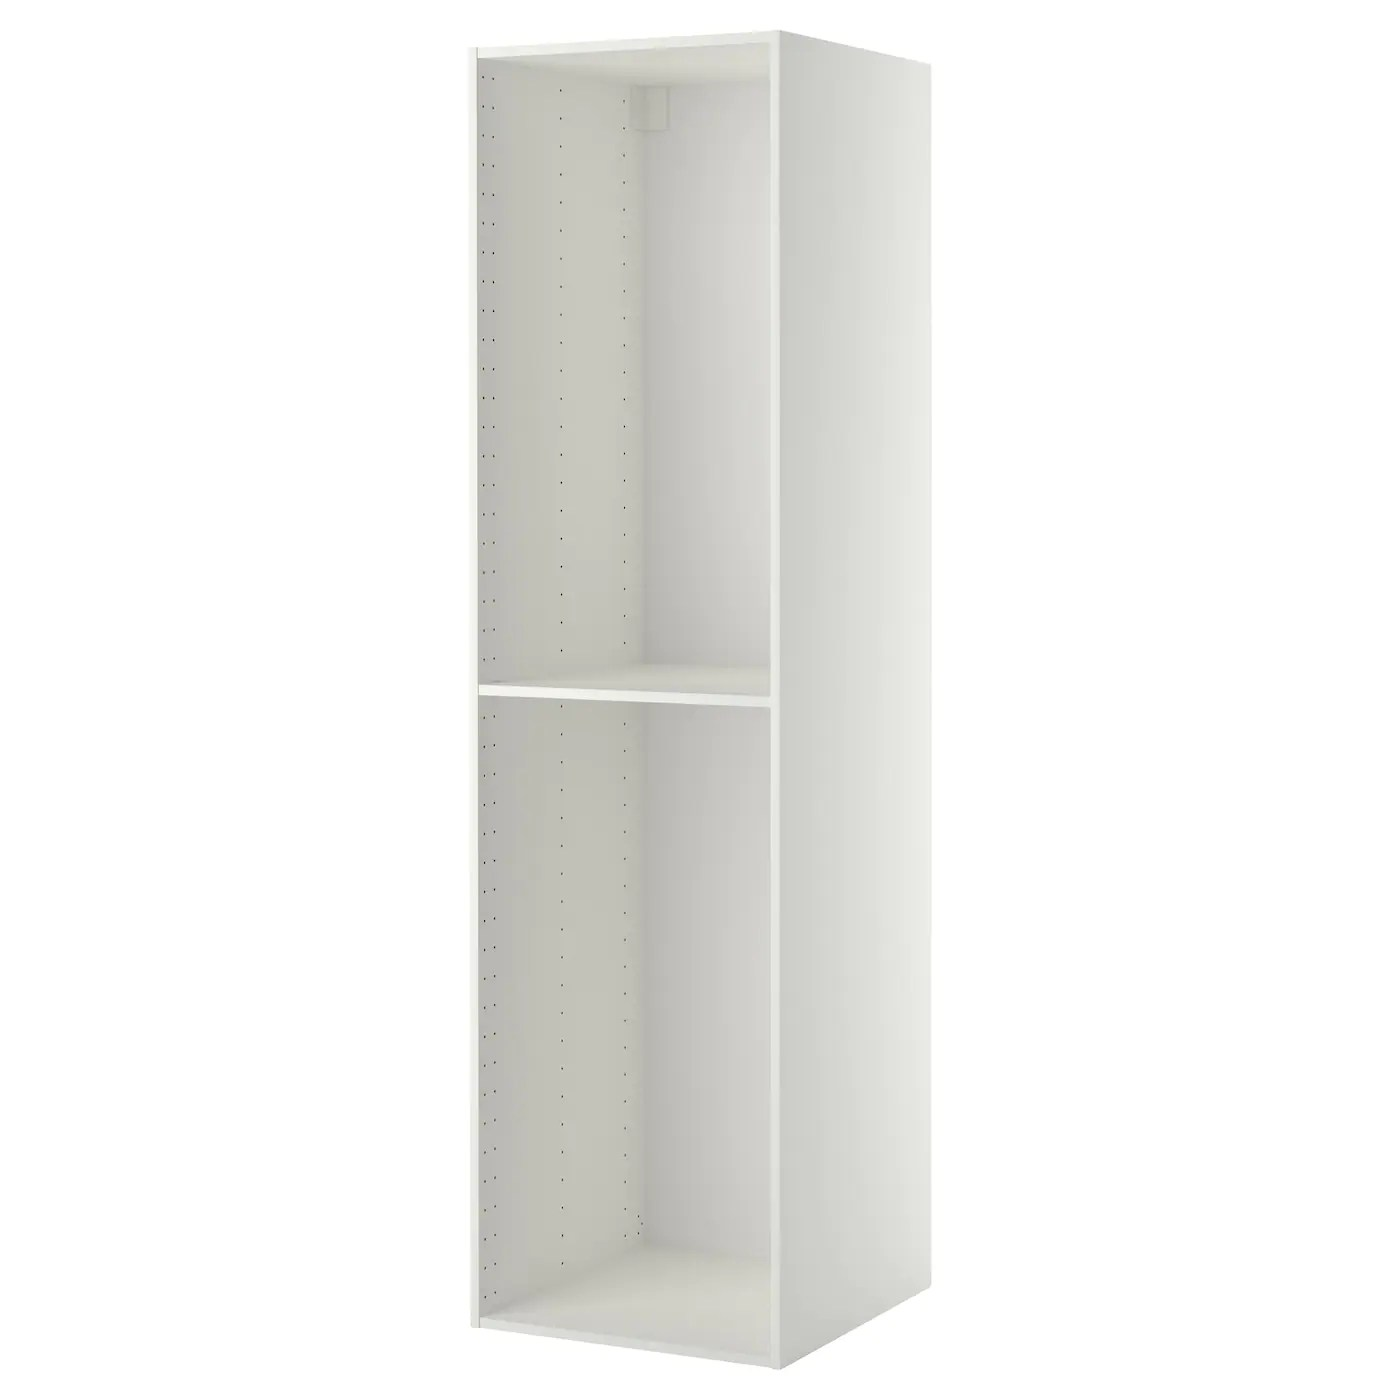 Ikea Method Metod High Cabinet Frame White